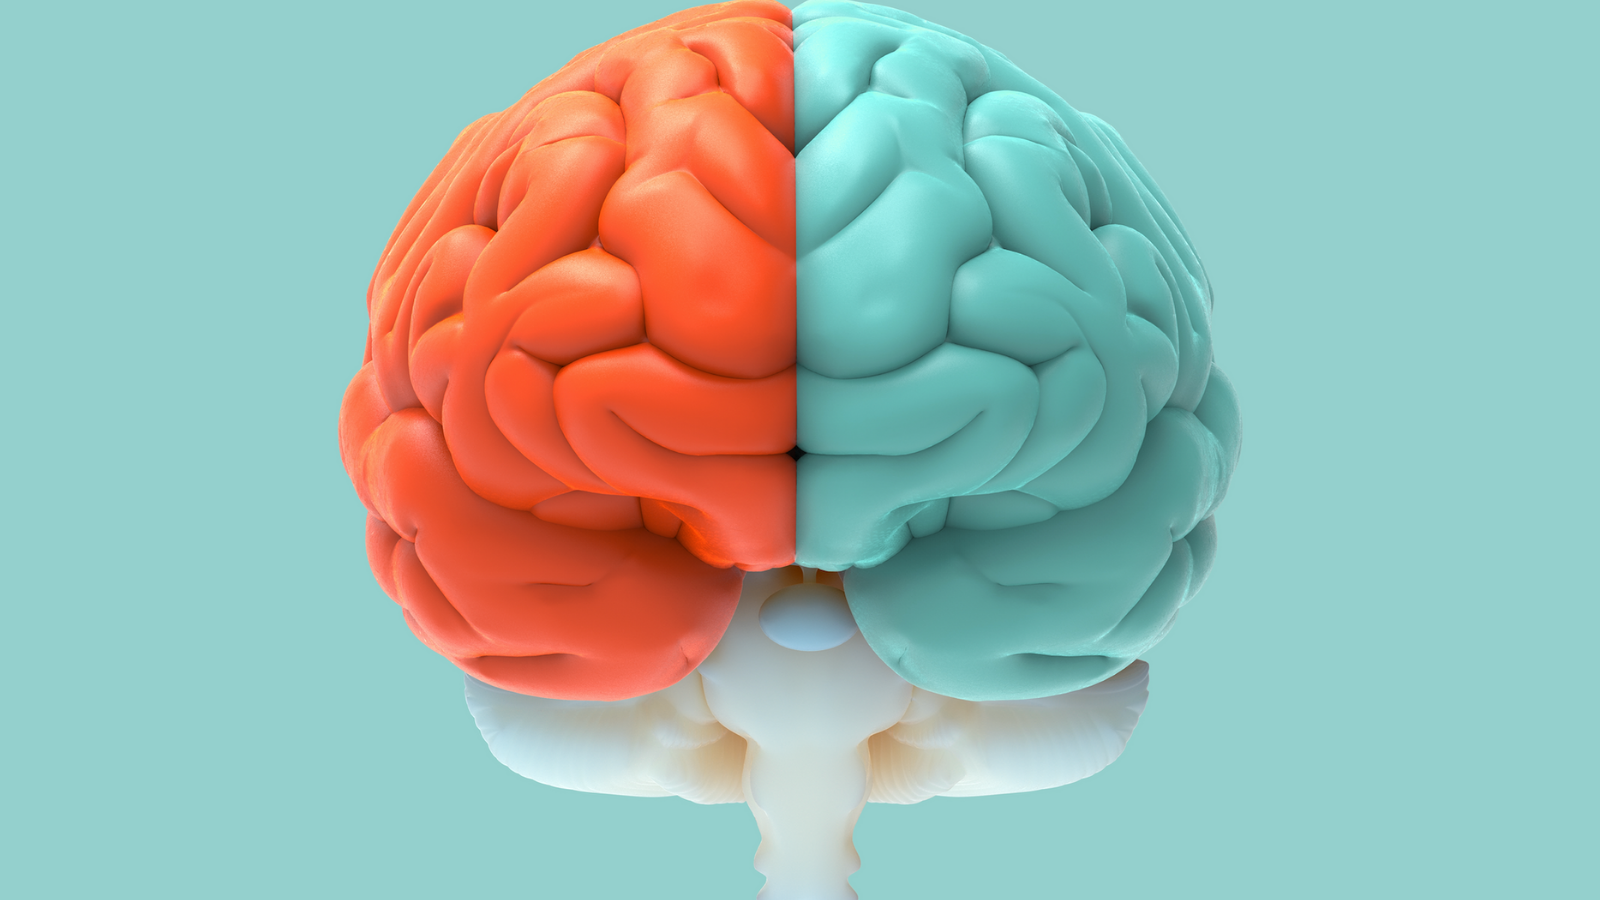 Everything you need to know about becoming a neurologist